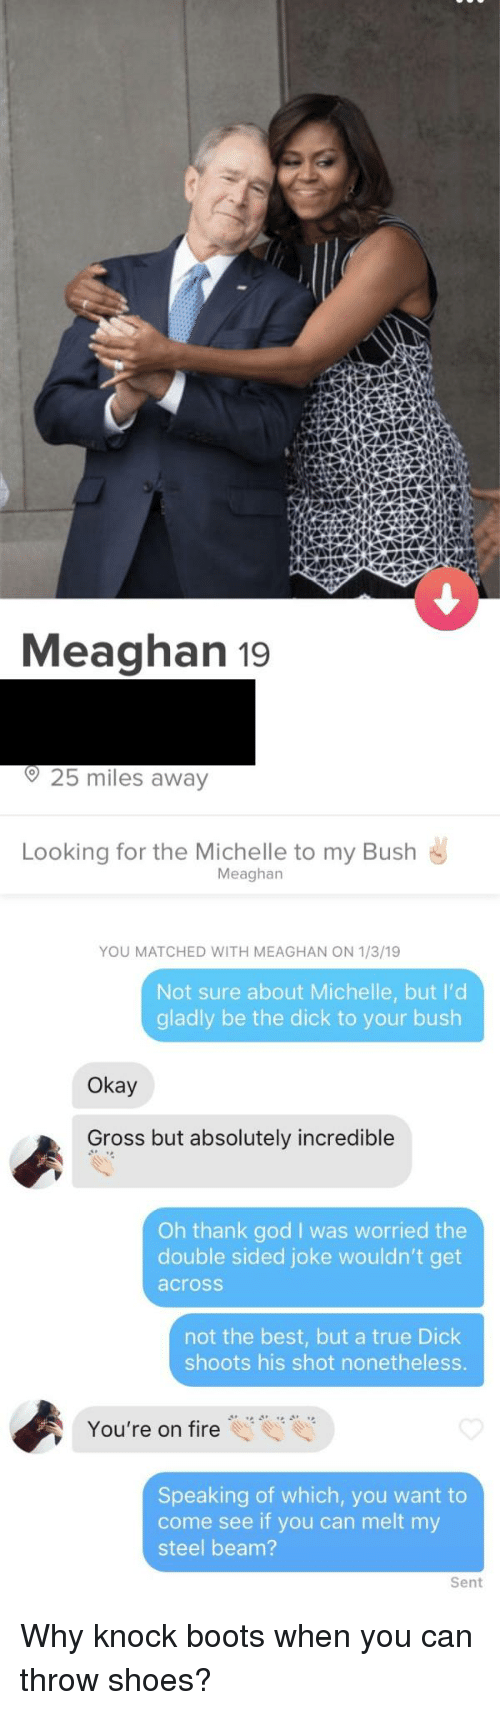 Fire, God, and Shoes: Meaghan 19  o25 miles away  Looking for the Michelle to my Bush  Meaghan  YOU MATCHED WITH MEAGHAN ON 1/3/19  Not sure about Michelle, but I'd  gladly be the dick to your bush  Okay  Gross but absolutely incredible  Oh thank god I was worried the  double sided joke wouldn't get  across  not the best, but a true Dick  shoots his shot nonetheless.  You're on fire  Speaking of which, you want to  come see if you can melt my  steel beam?  Sent Why knock boots when you can throw shoes?